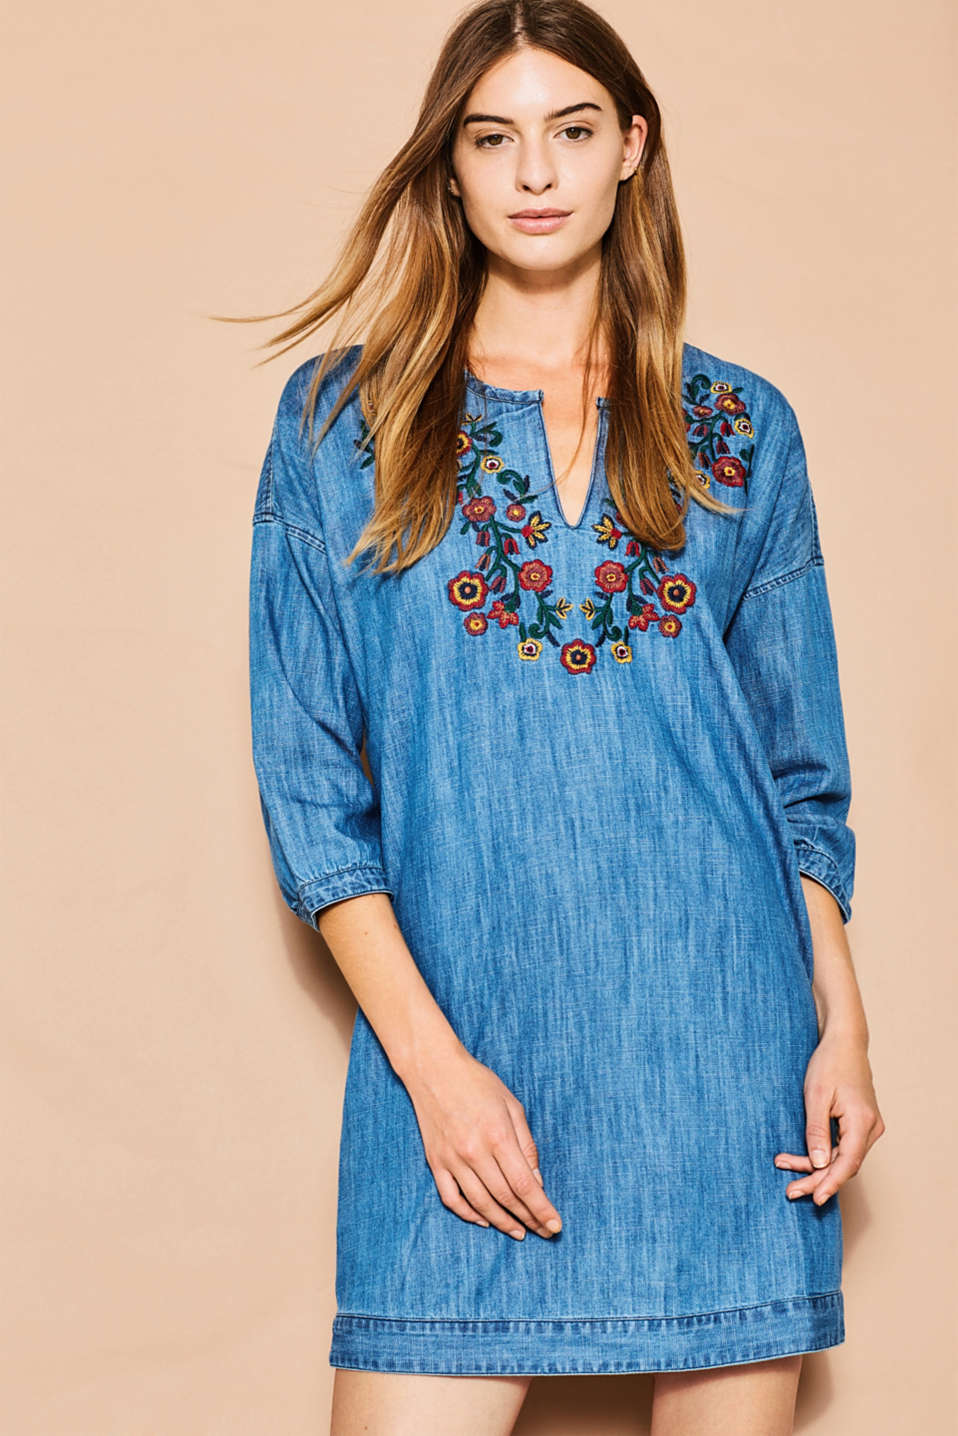 Esprit - Embroidered tunic dress, cotton denim